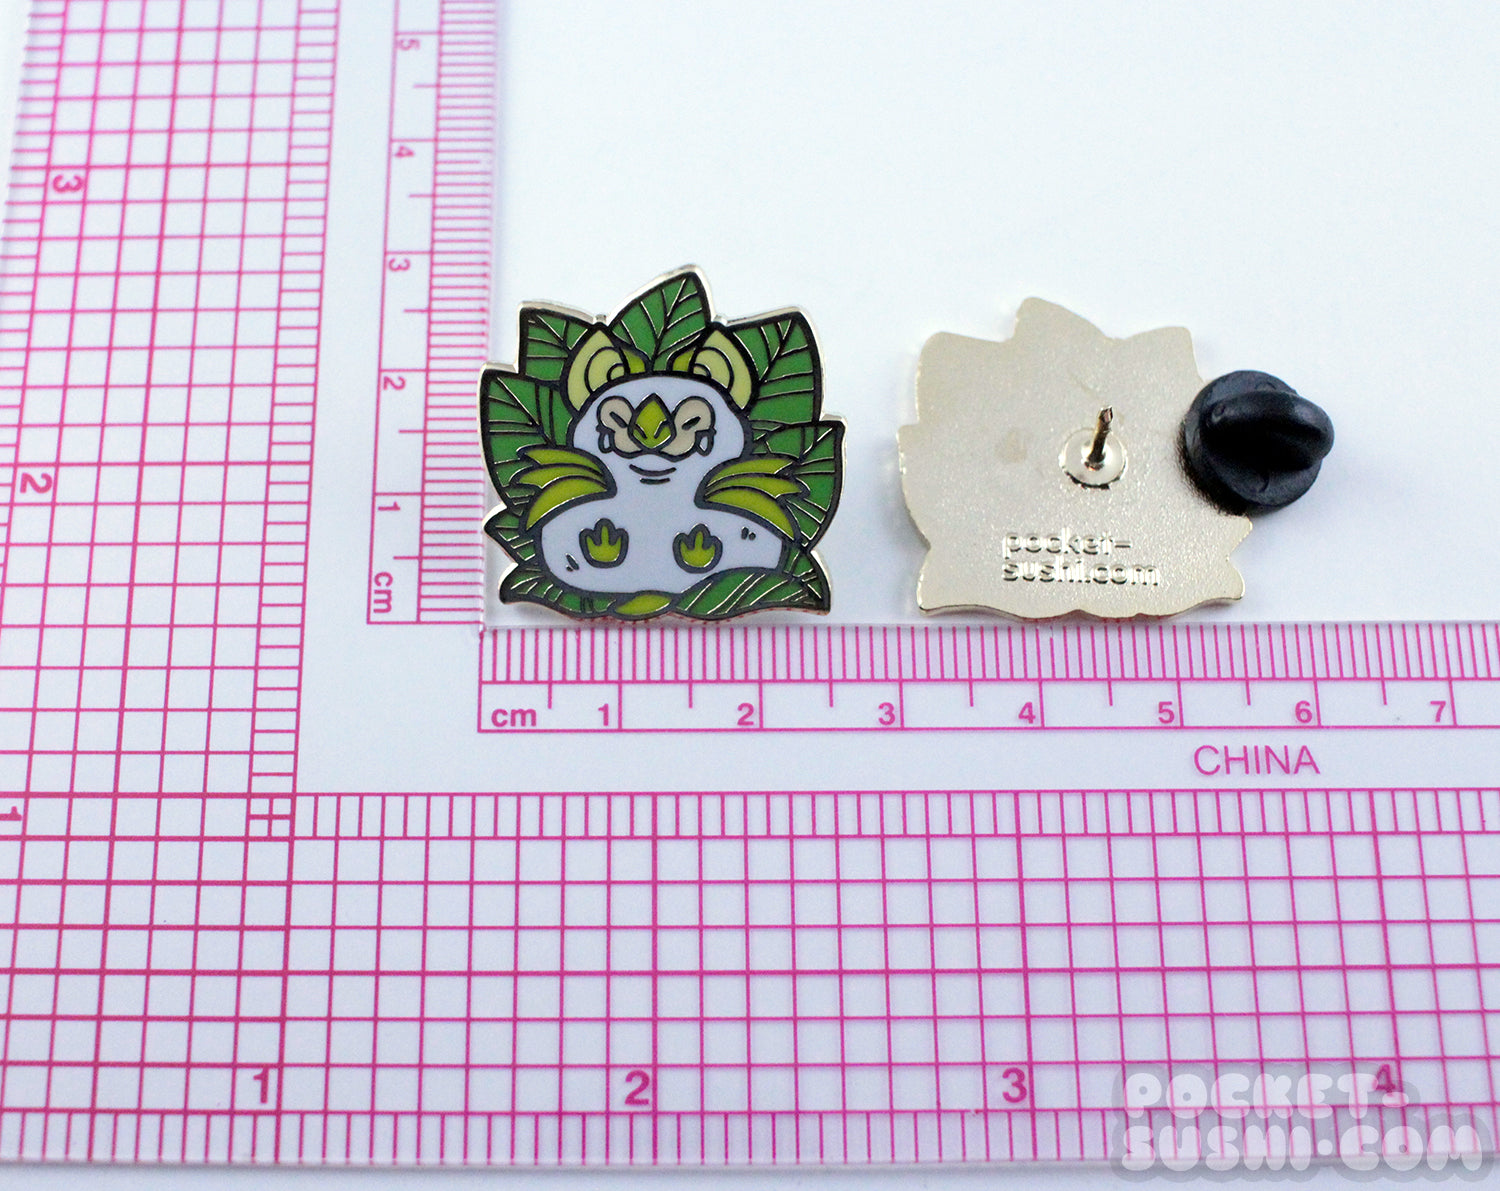 Honduran White Bat Enamel Pin